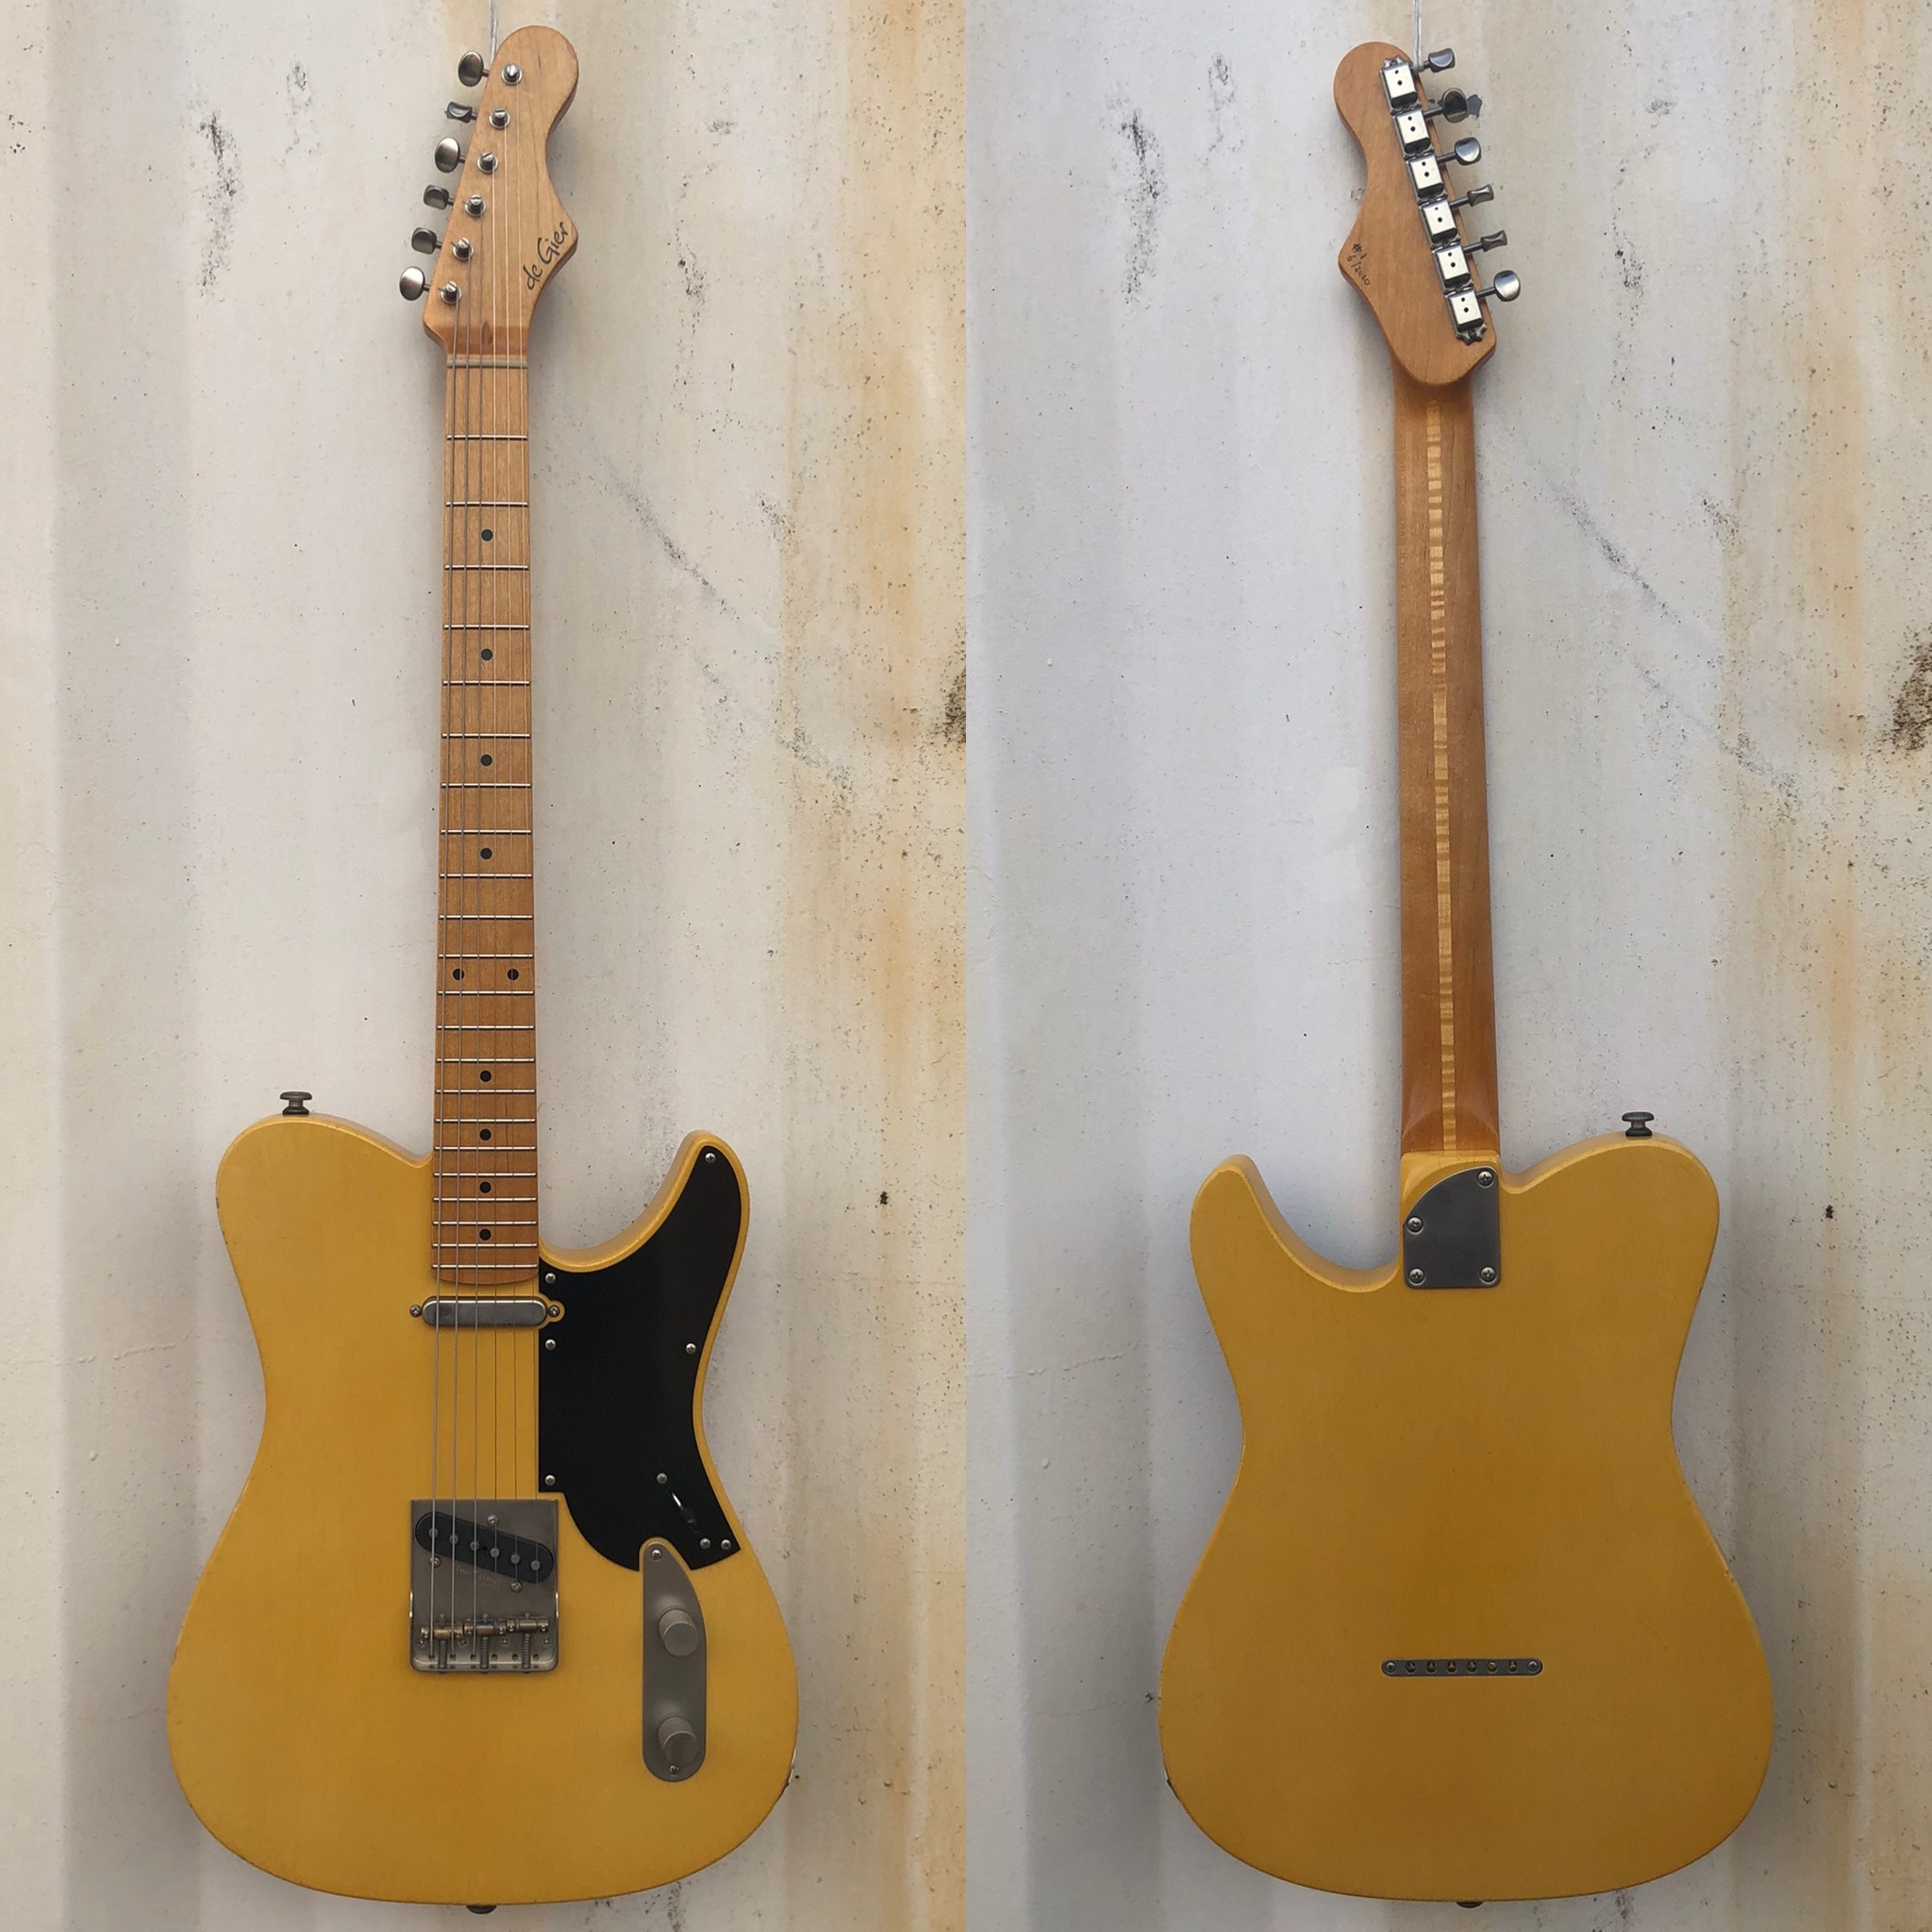 De Gier Tele butterscotch